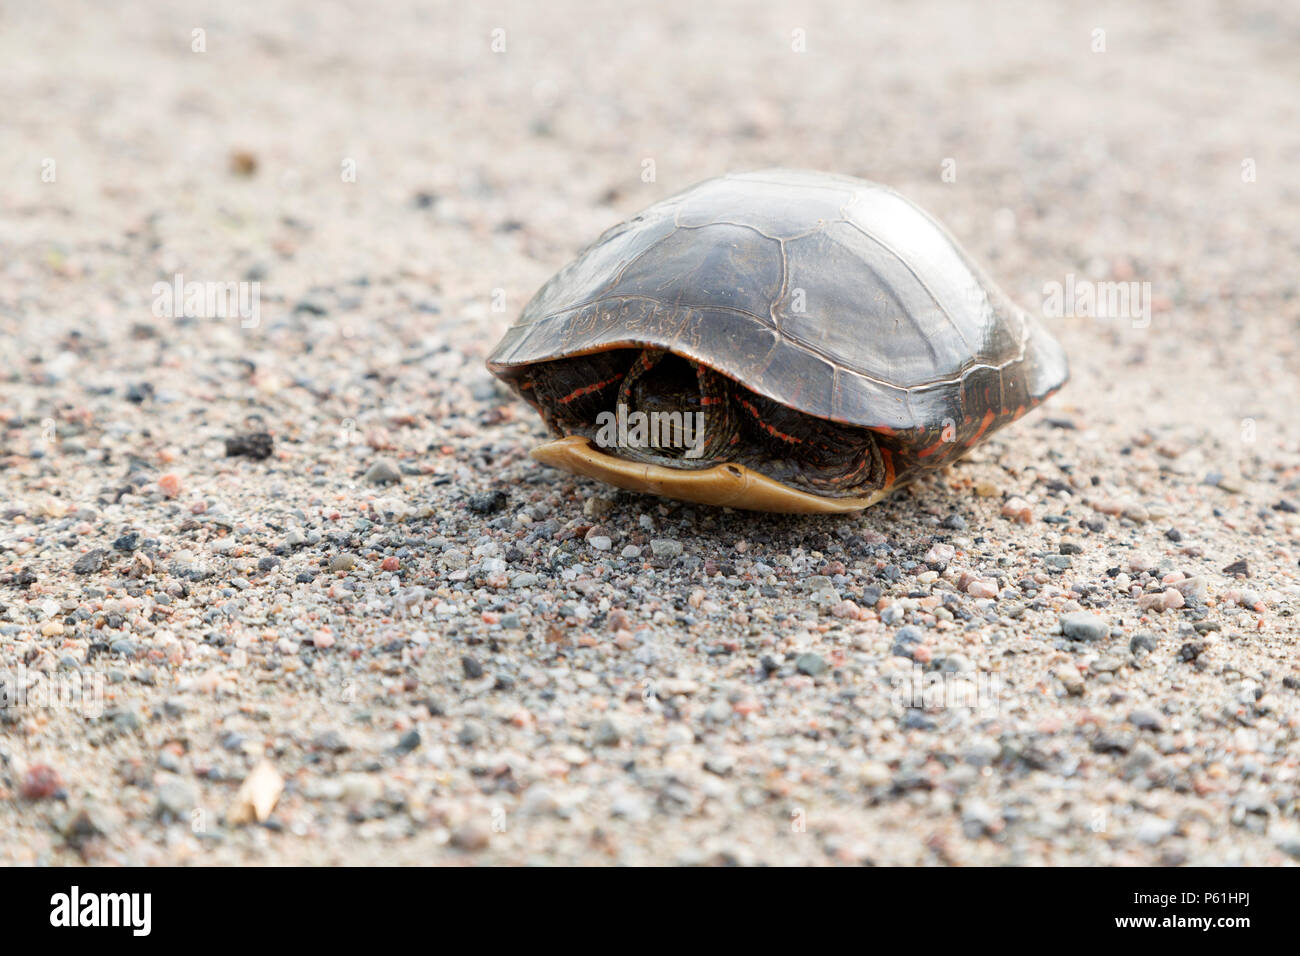 A painted turtle (Chrysemys picta) on a road in Ontario, Canada. The turtle has withdrawn into its shell. - Stock Image